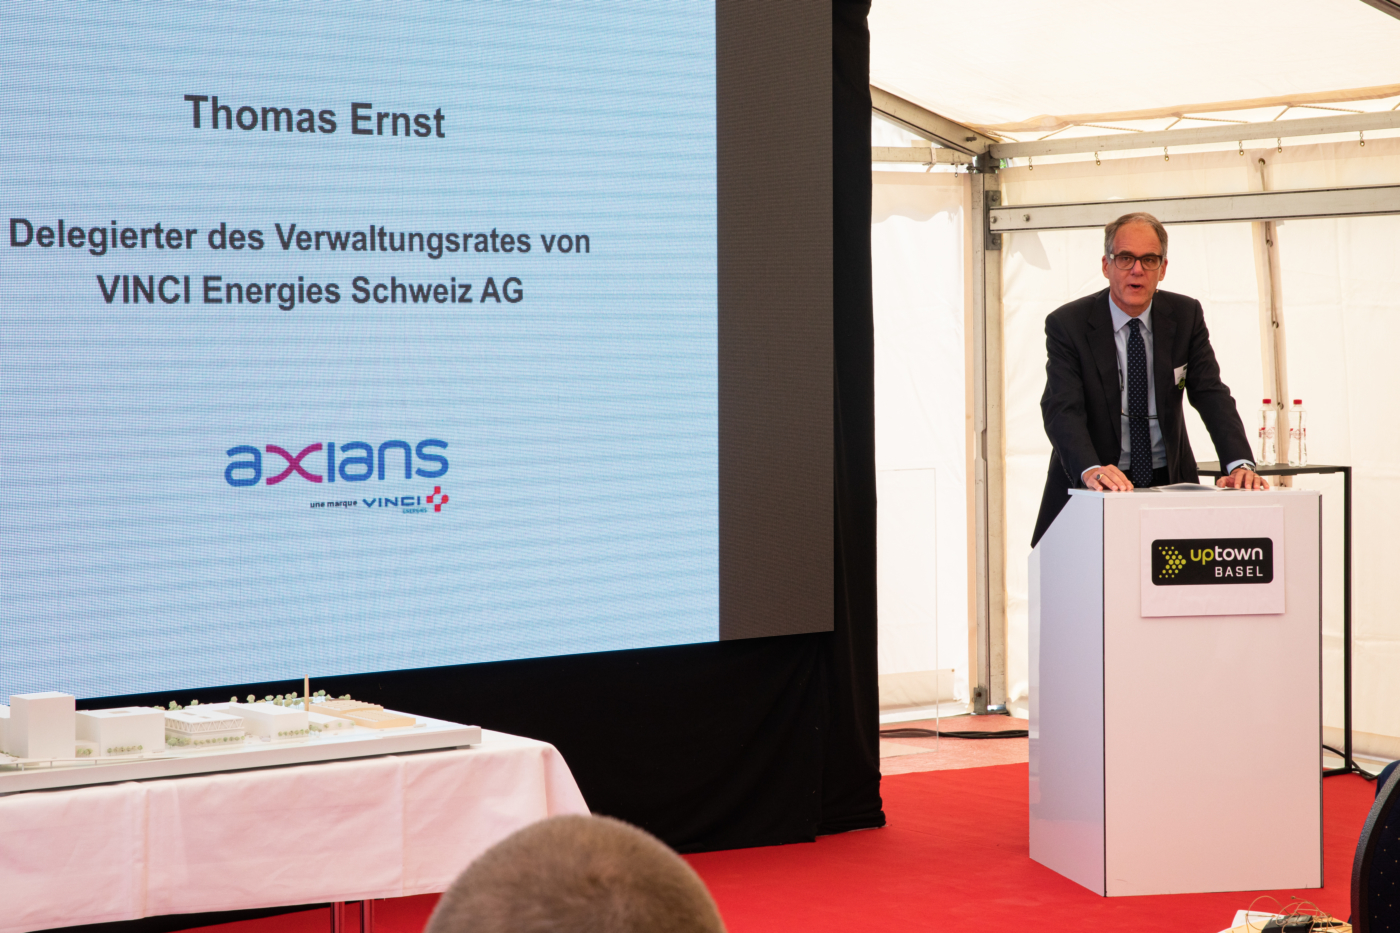 Photos for this media folder, One of the first tenants of the first building will be Axians. Thomas Ernst, CEO and Chairman of VINCI Energies Switzerland AG, presents the future utilisation of the site. © Copyright Sara Barth, Basel  Digitale Medienmappe «Laying the uptownBasel foundation stone: a quantum leap for the industry», uptownBasel